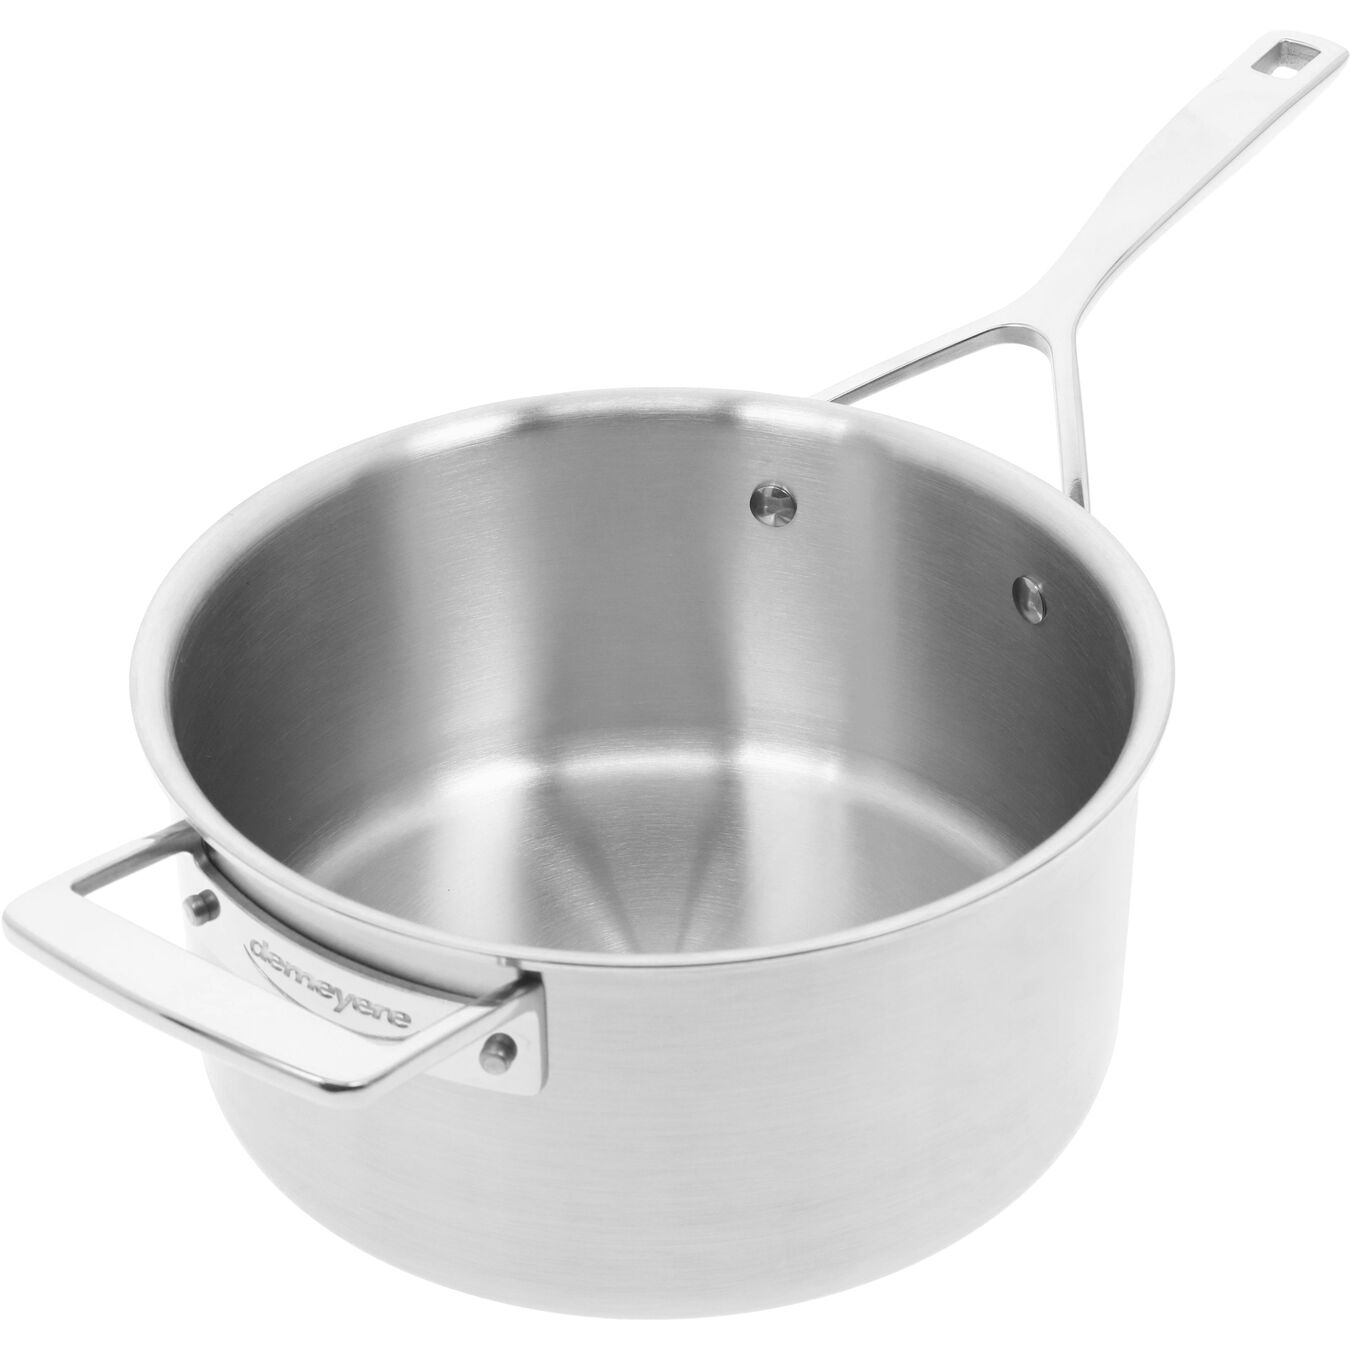 3.8 l round sauce pan with lid 4QT, silver,,large 8